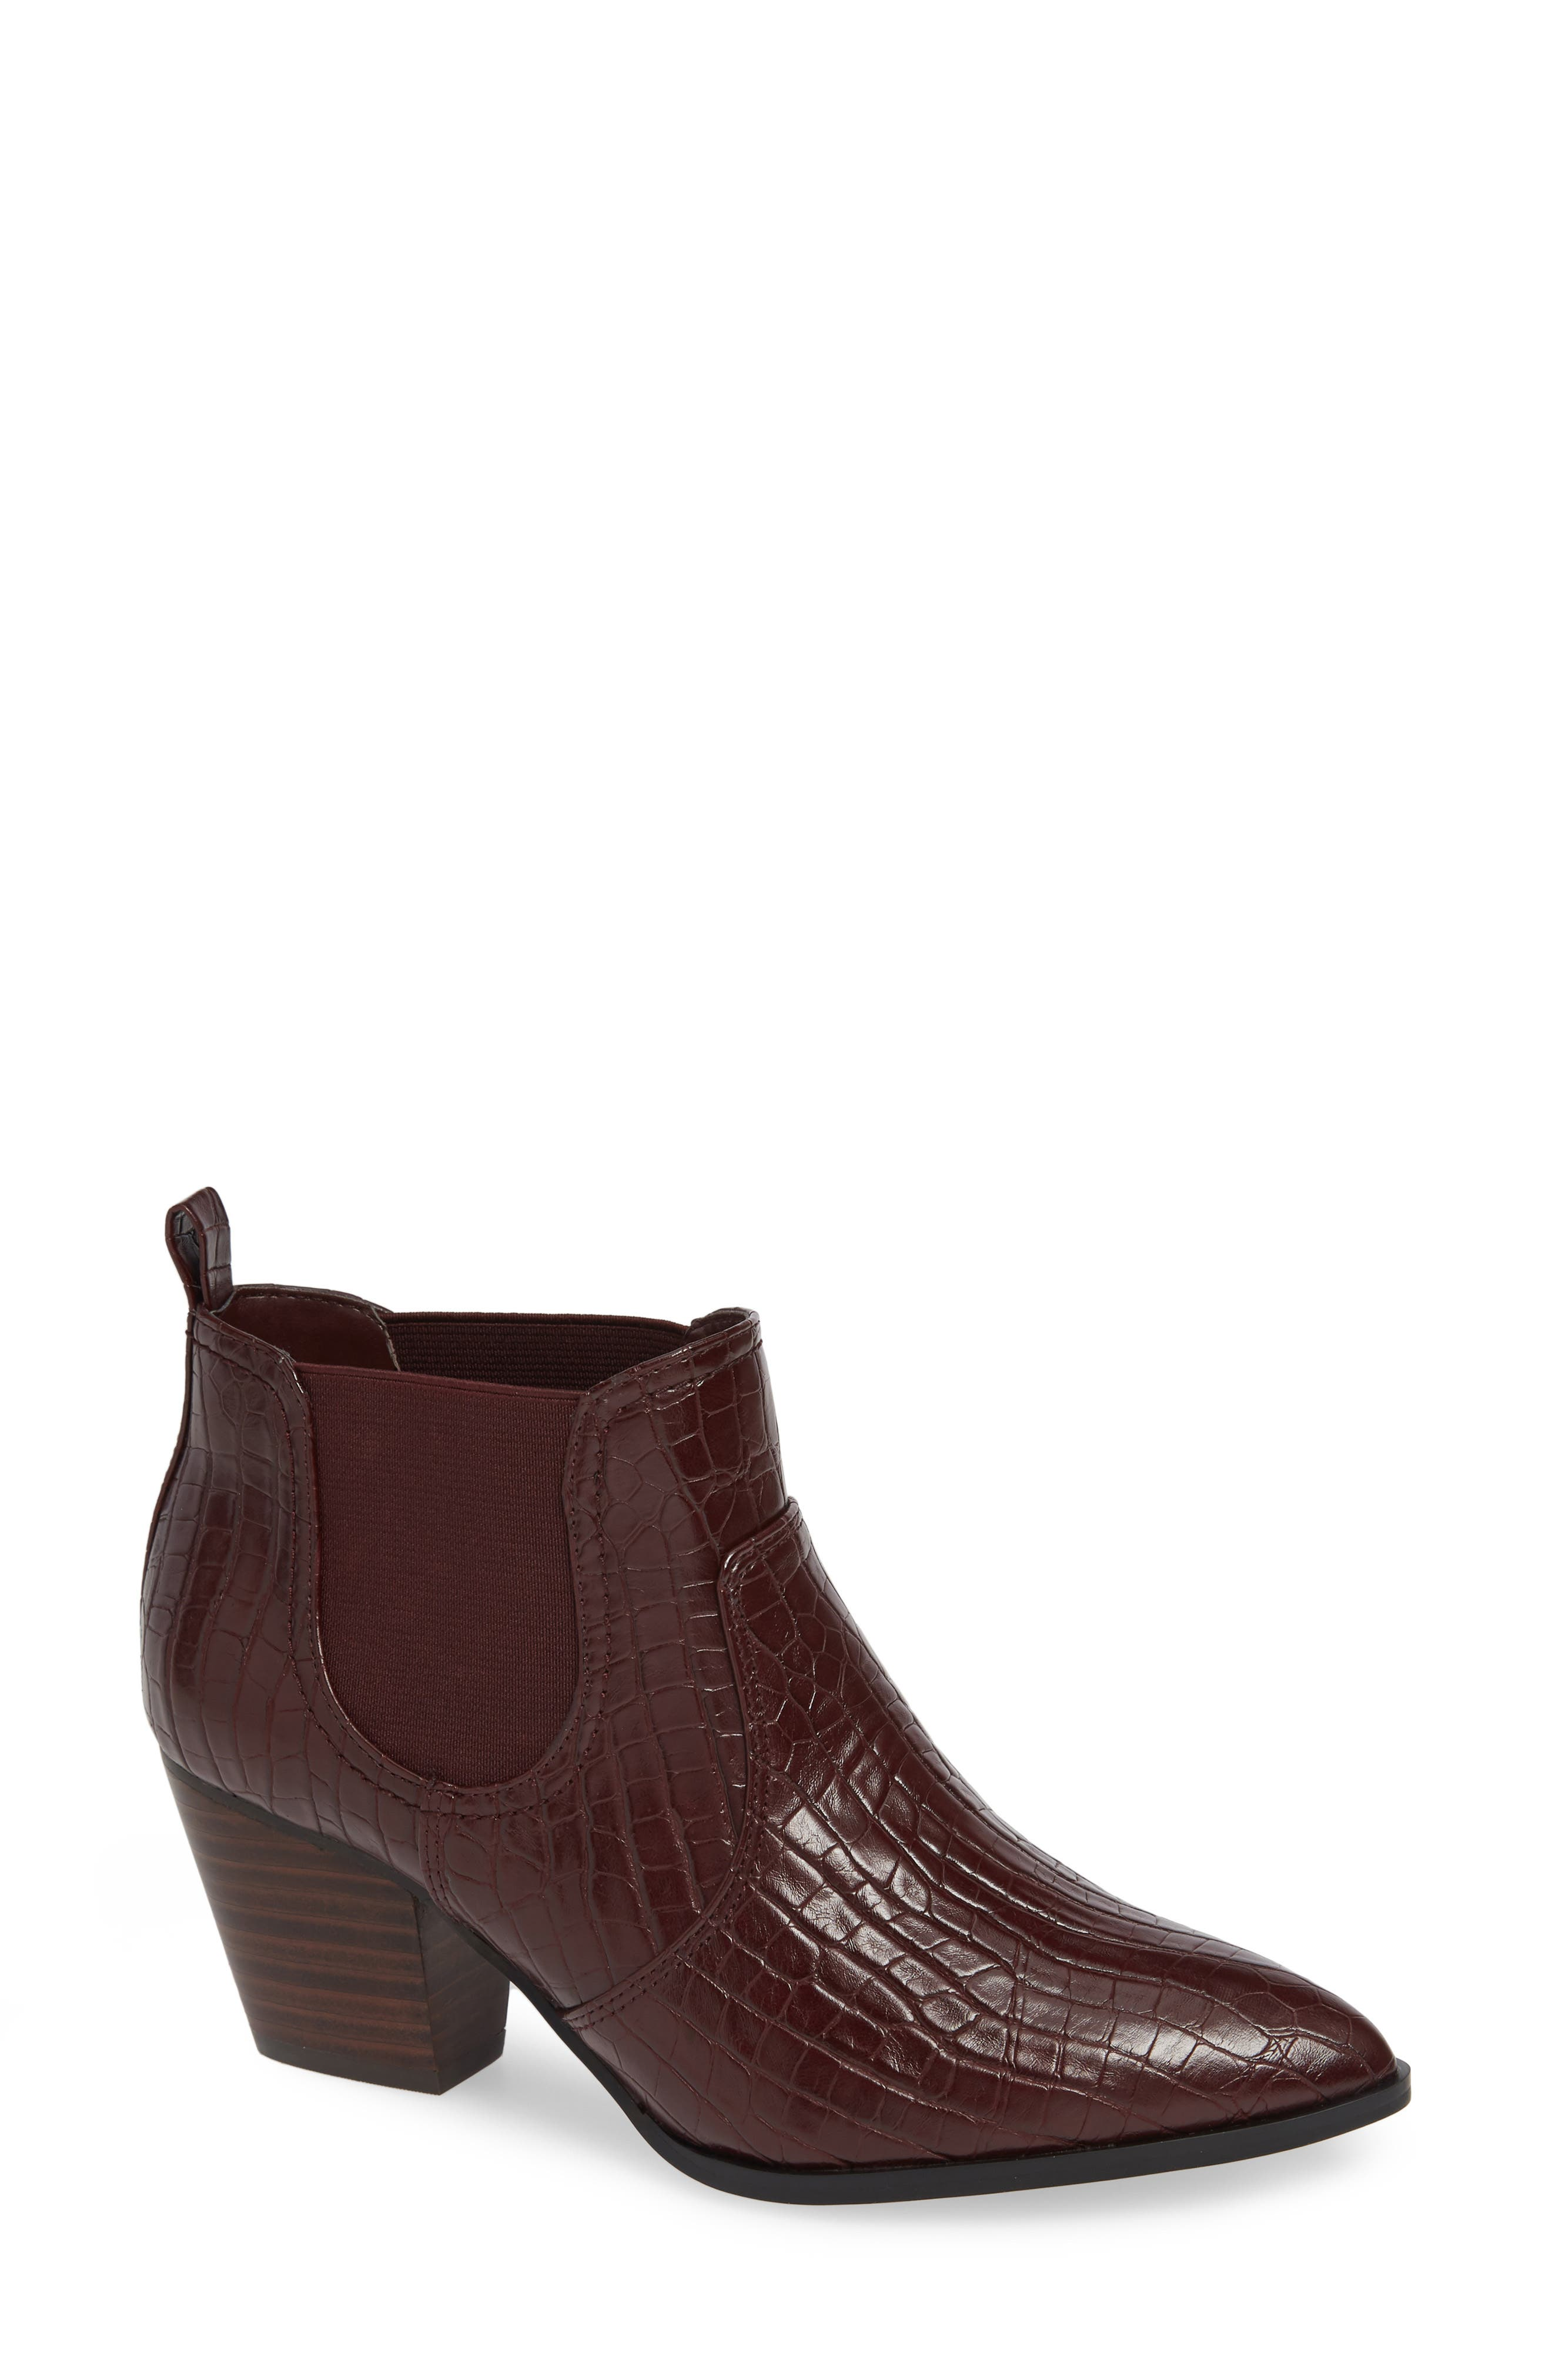 Emerson II Chelsea Bootie,                         Main,                         color, BURGUNDY